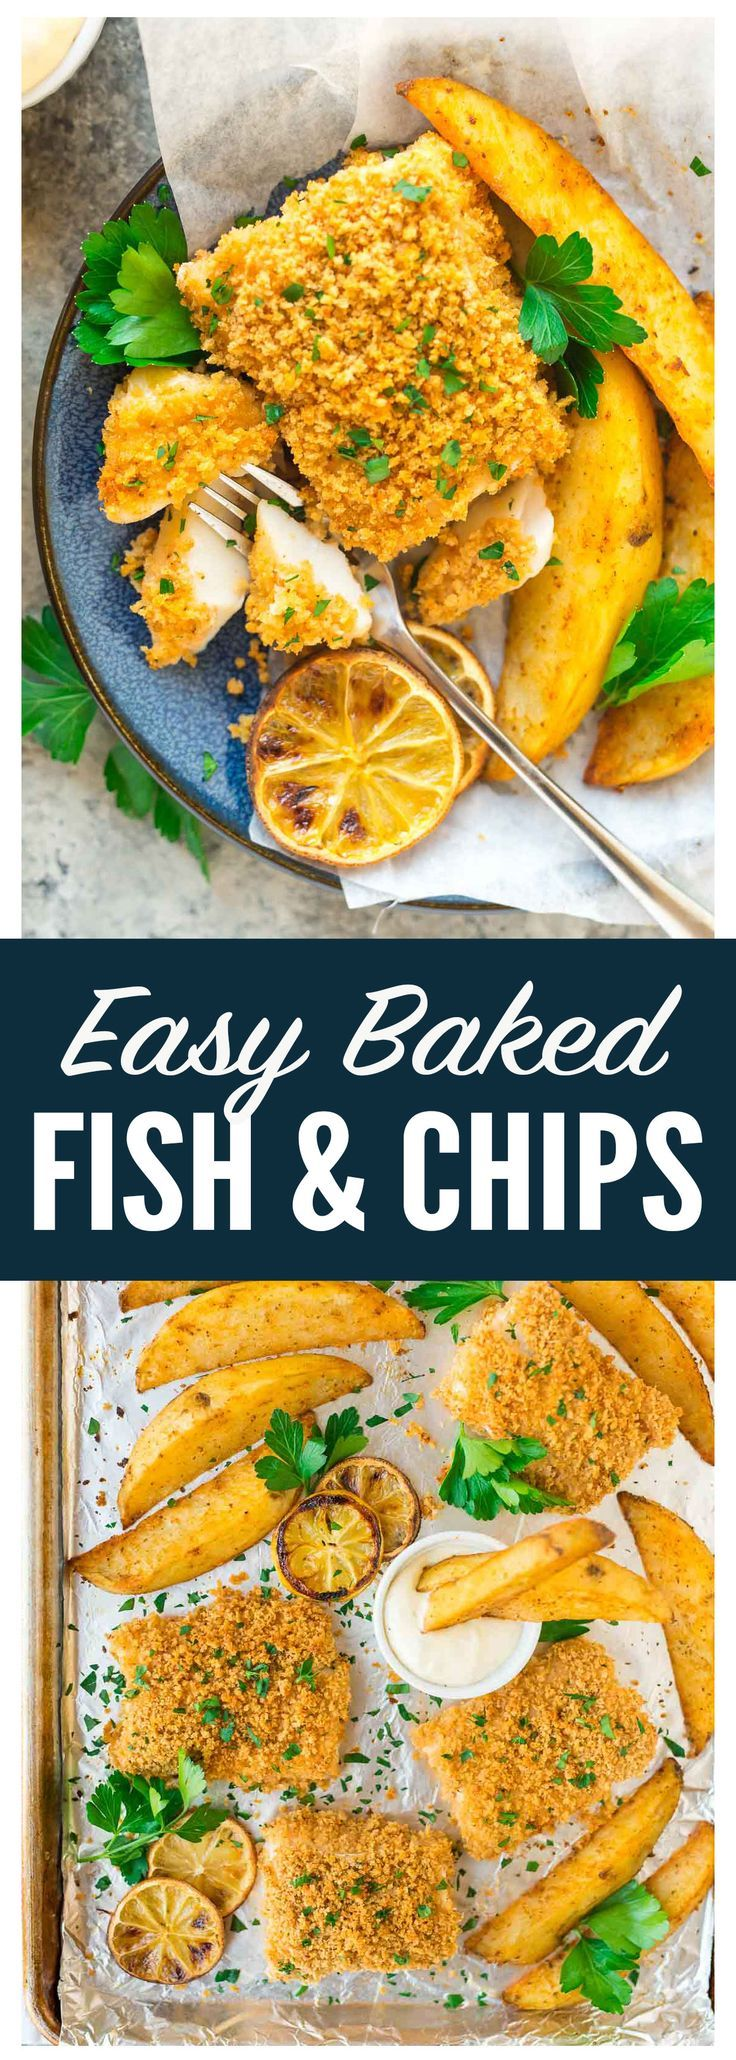 17 best ideas about baked fish on pinterest healthy for Baked fish and chips